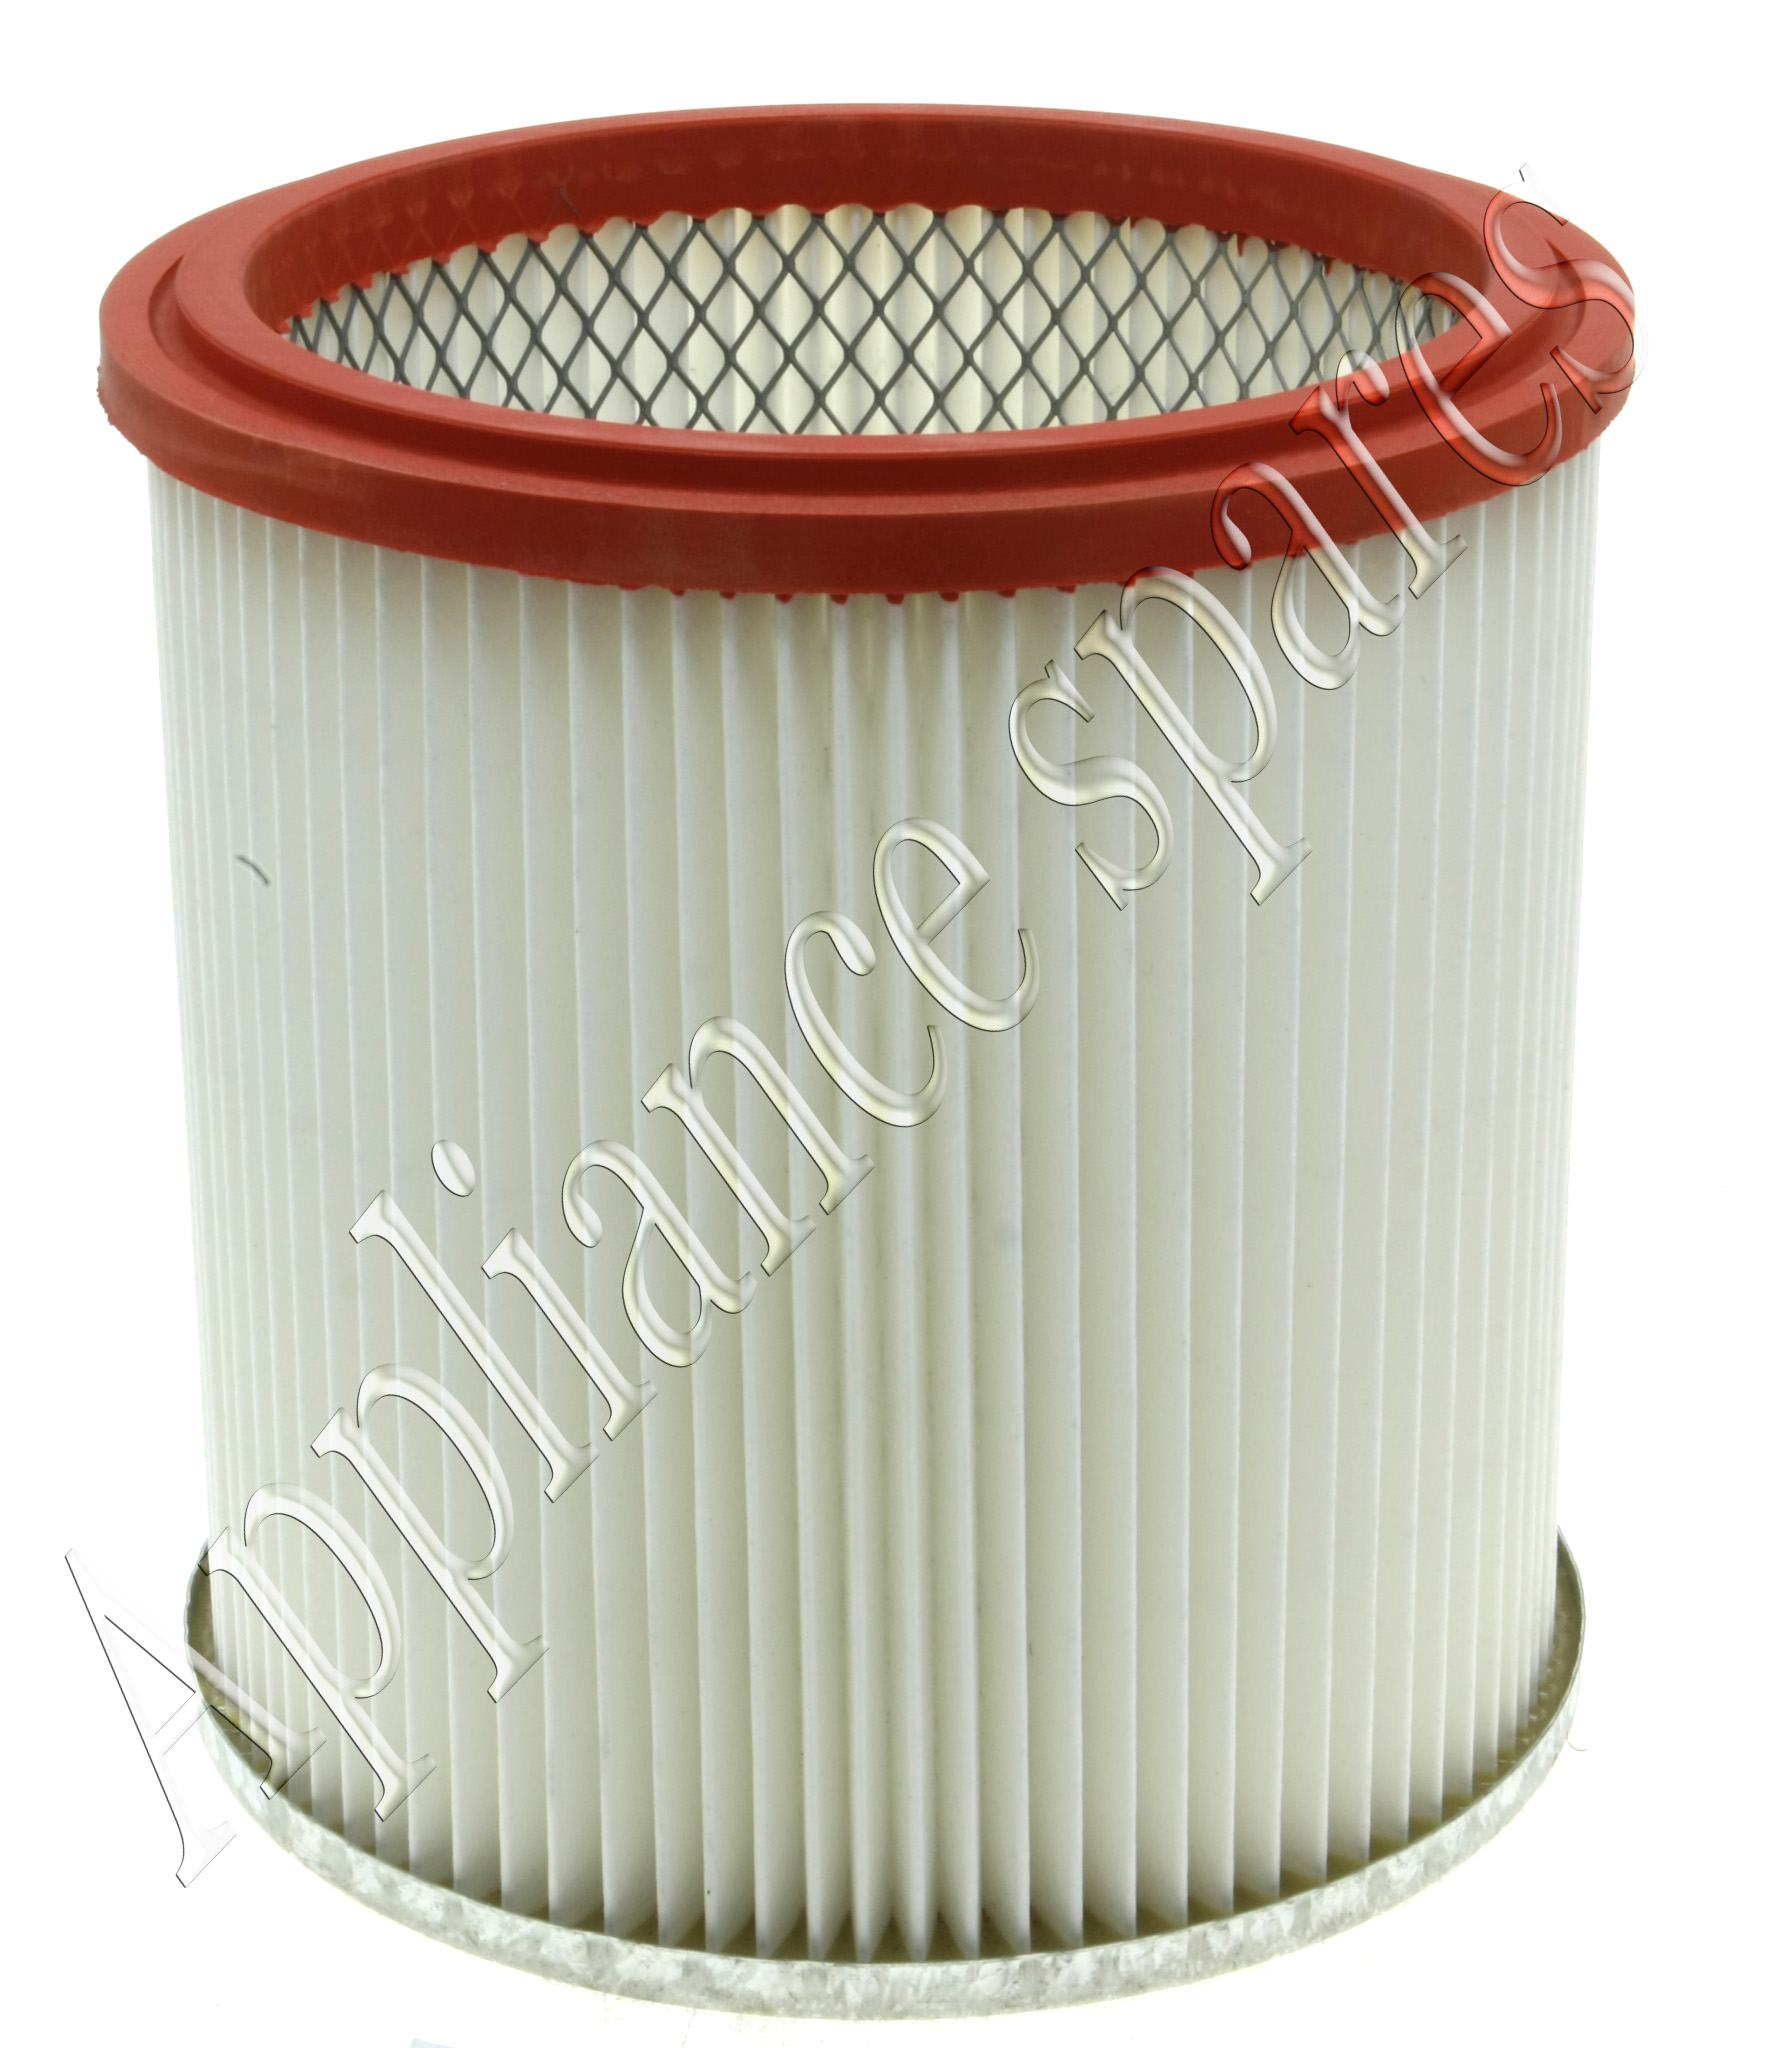 Aeg Vacuum Cleaner Cartridge Filter Lategan And Van